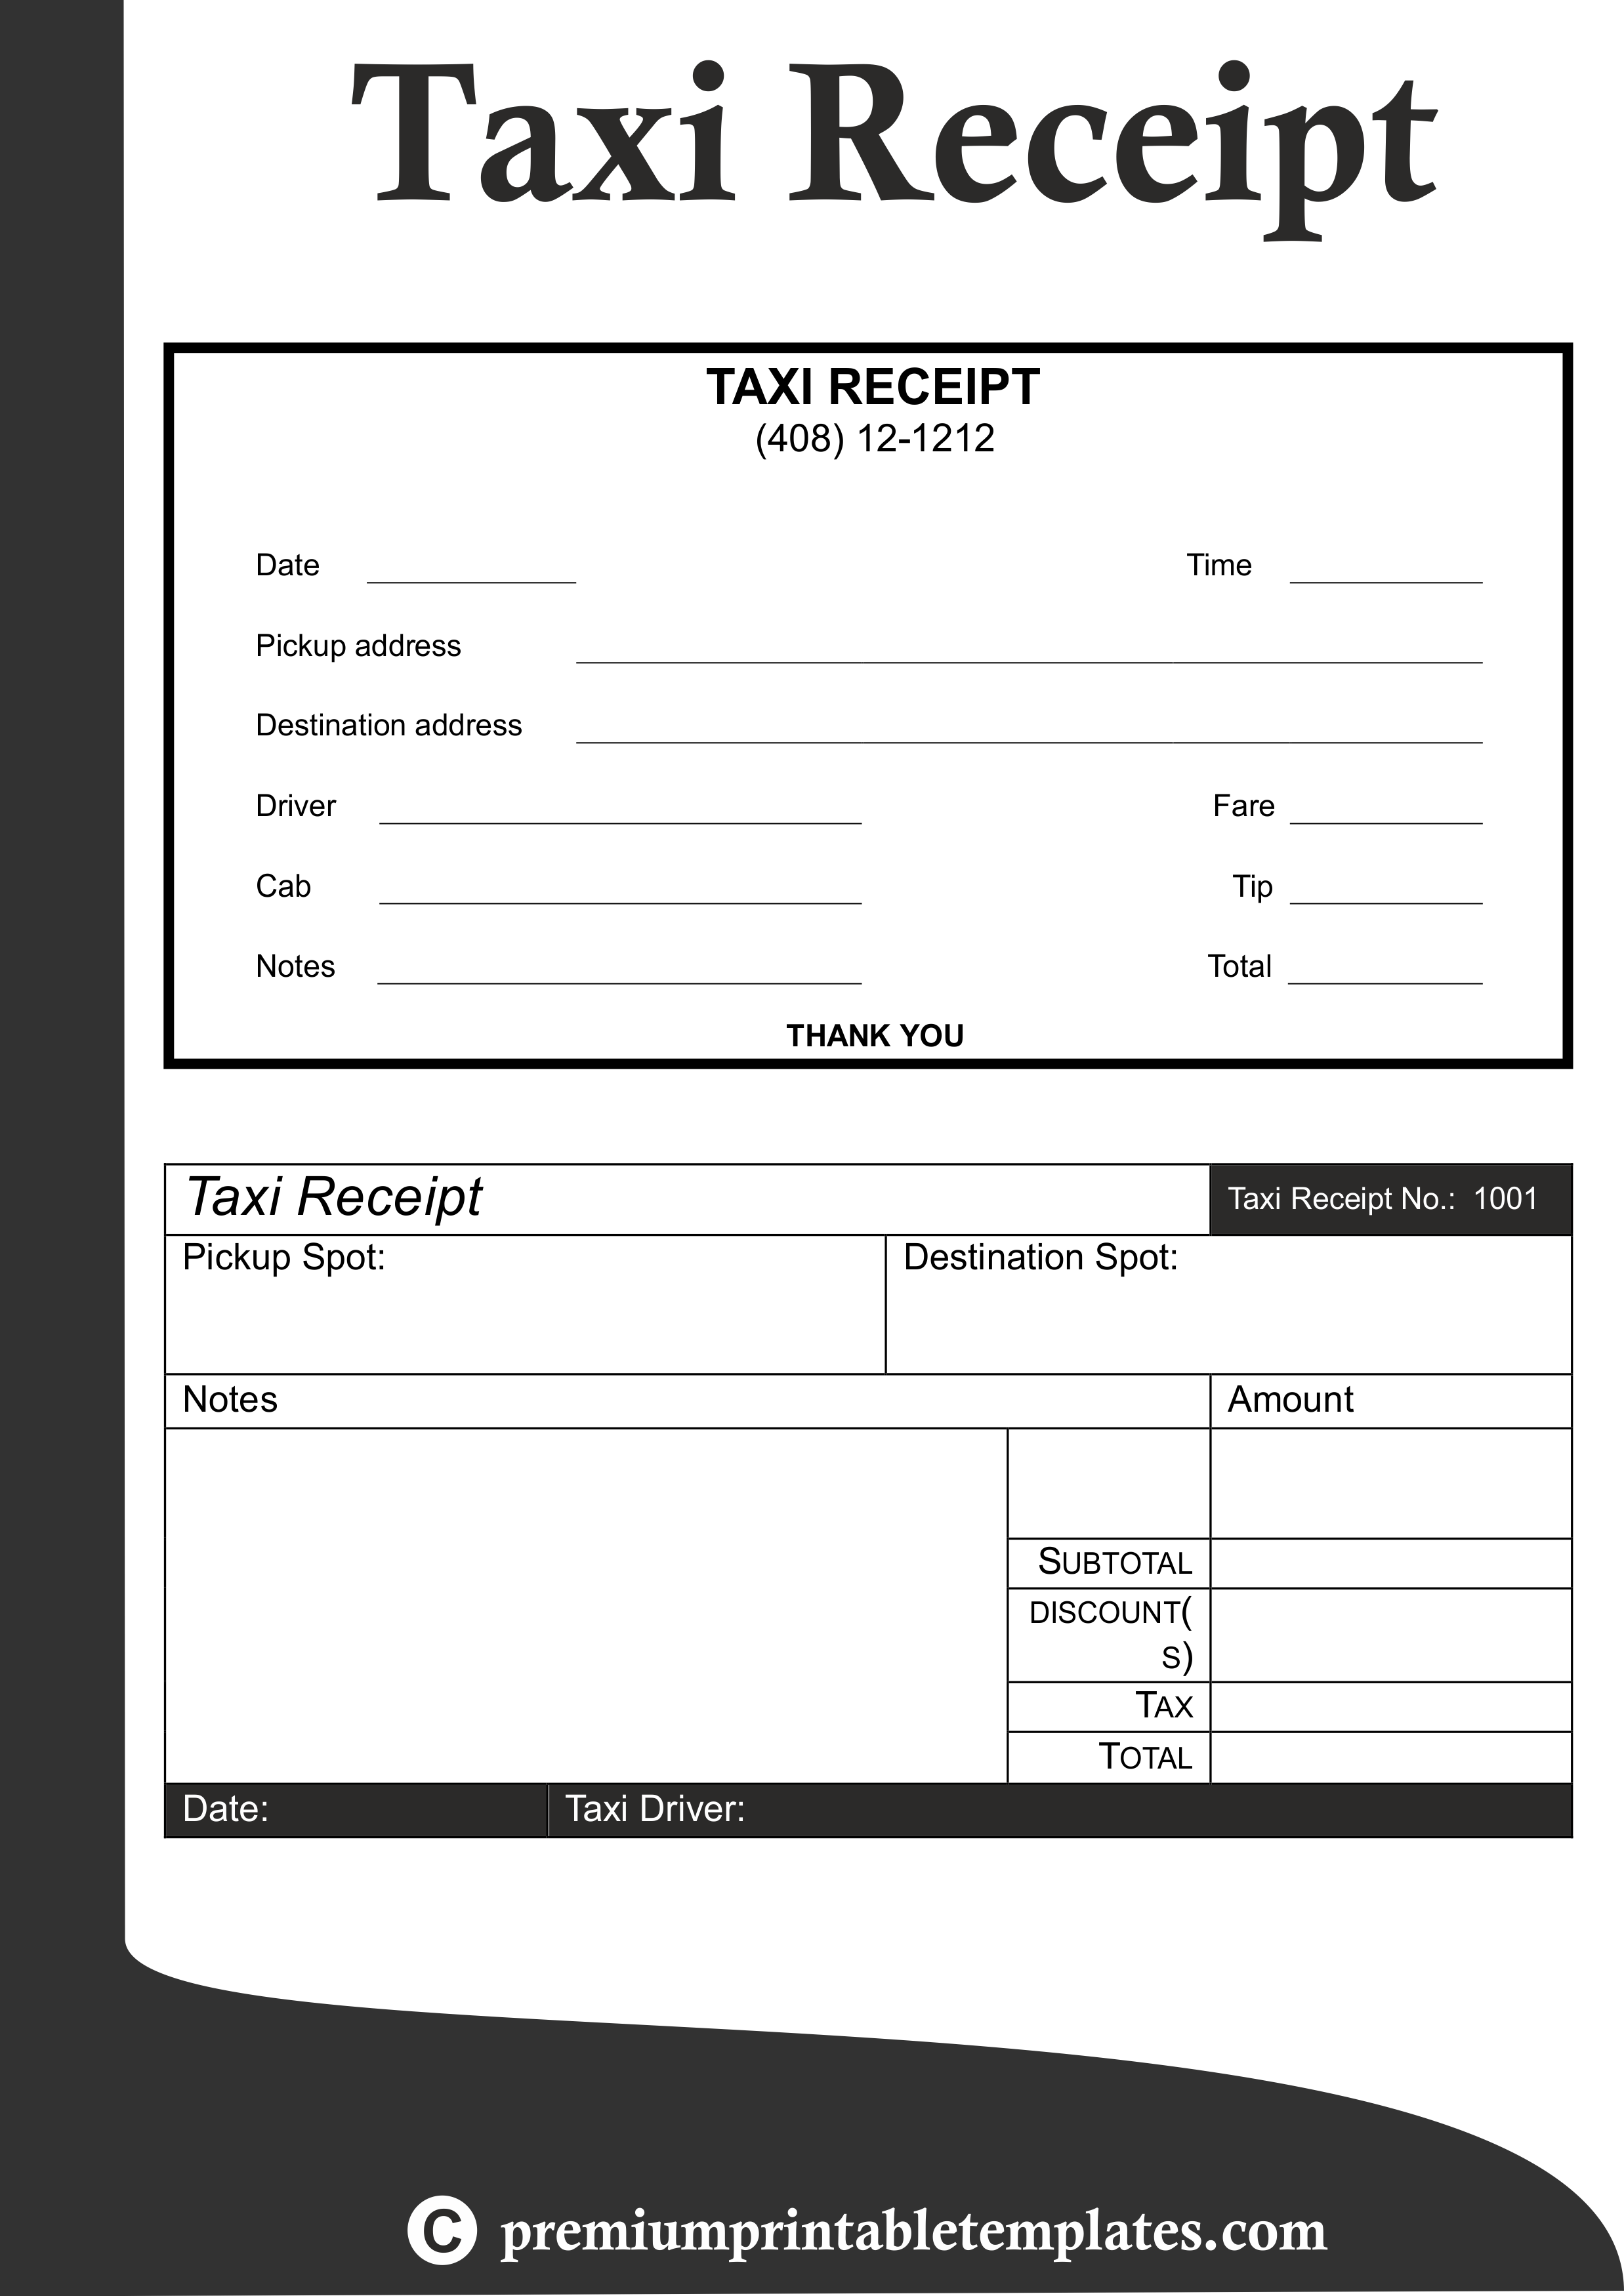 Taxi Receipt Template Pack Of 5 Premium Printable Templates Receipt Template Business Plan Template Template Printable